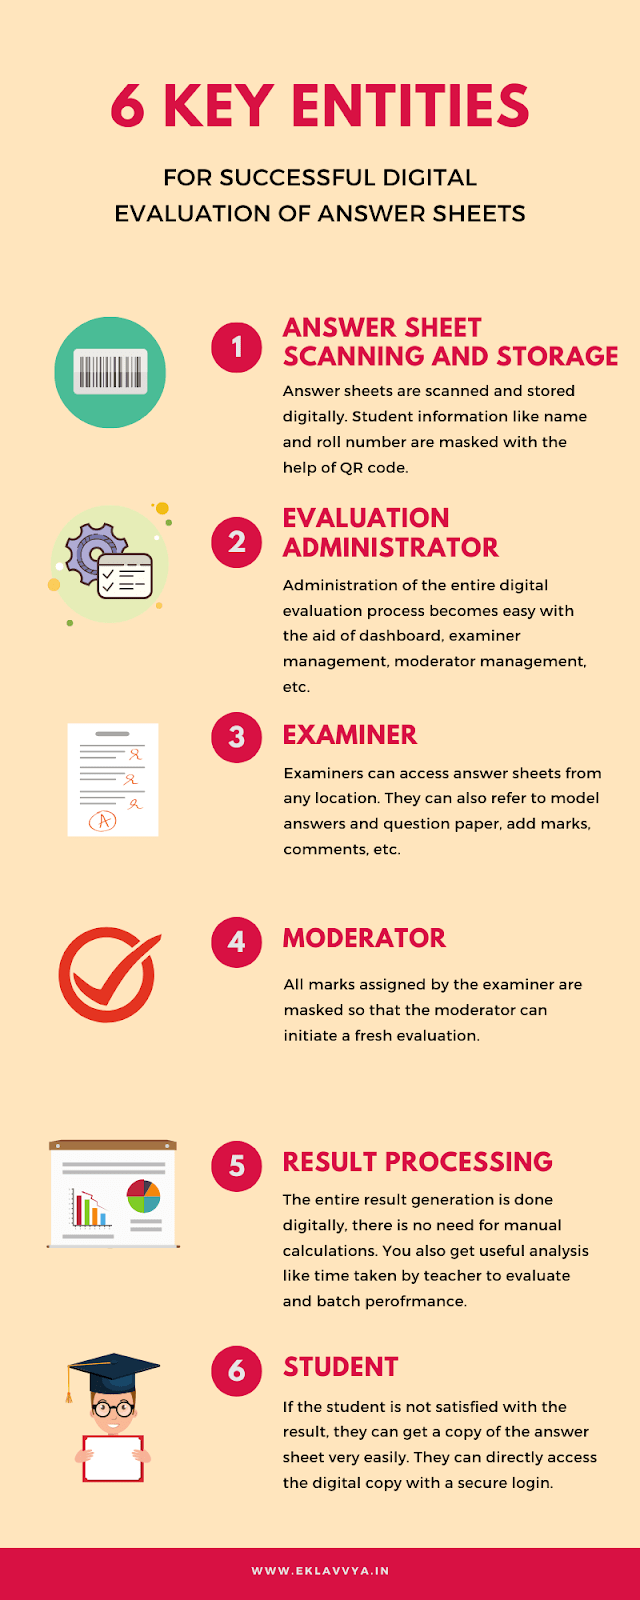 6 key entities for successful digital evaluation of answer sheets - Infographic